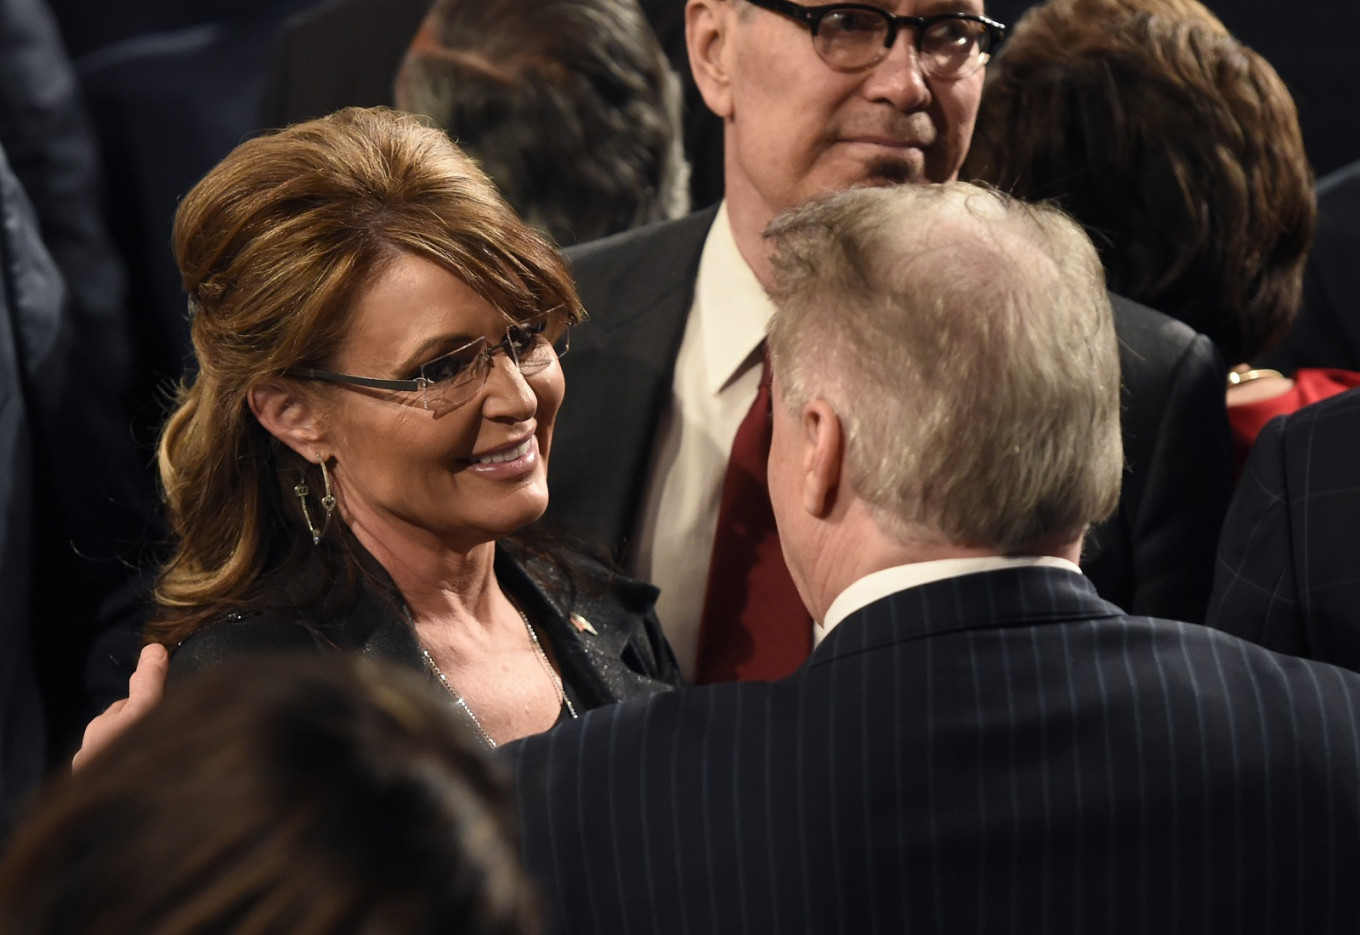 Sarah Palin can sue New York Times for defamation: Court ruling